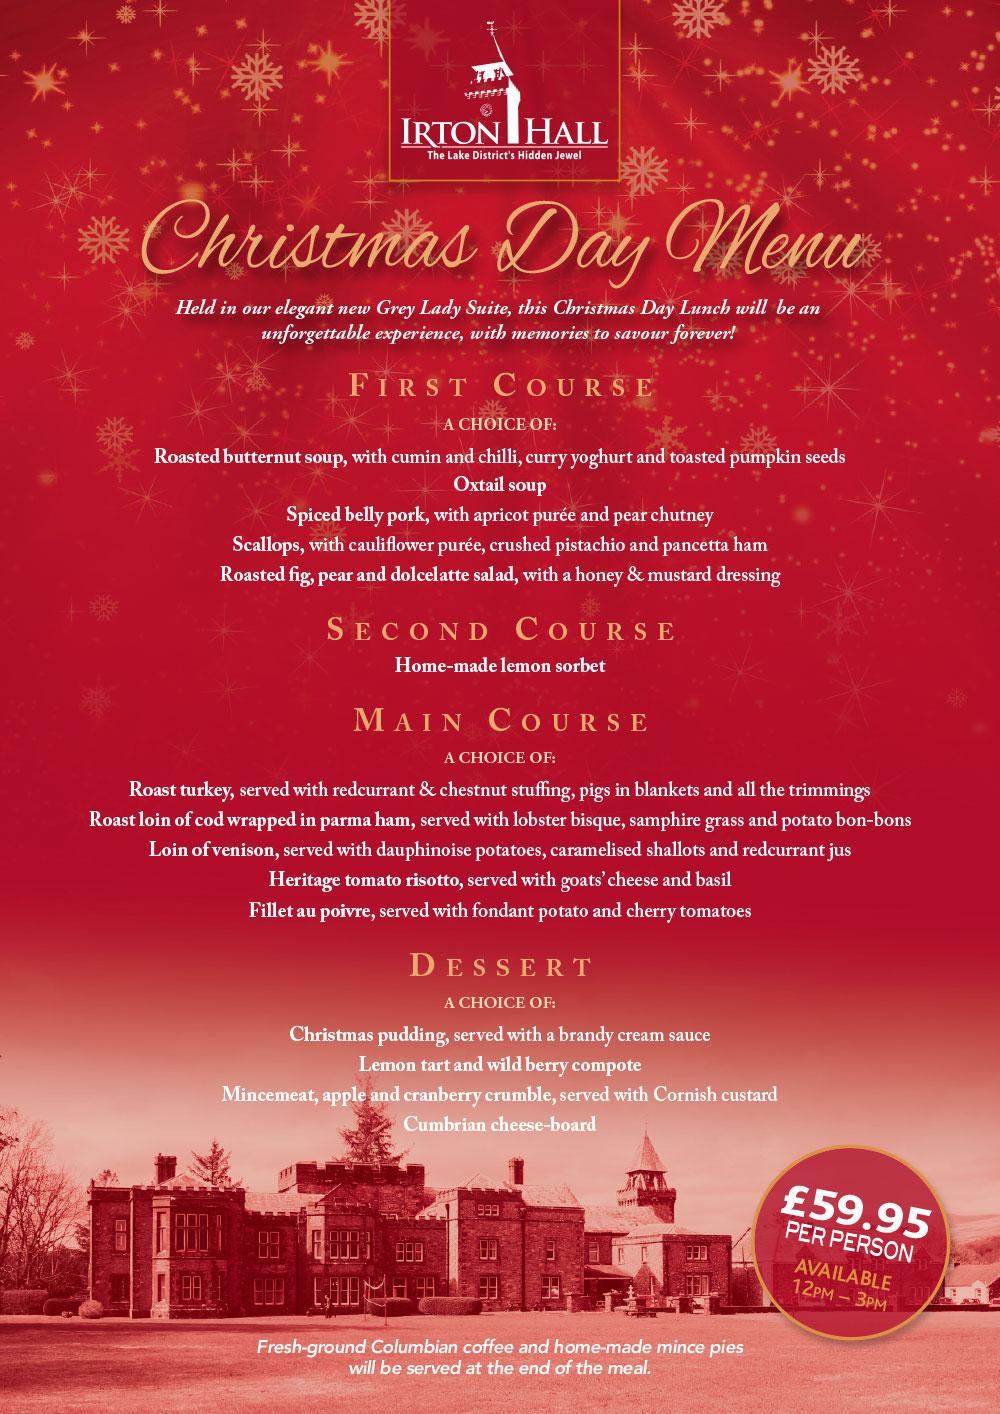 irton hall christmas day menu 2018 - Christmas Day 2018